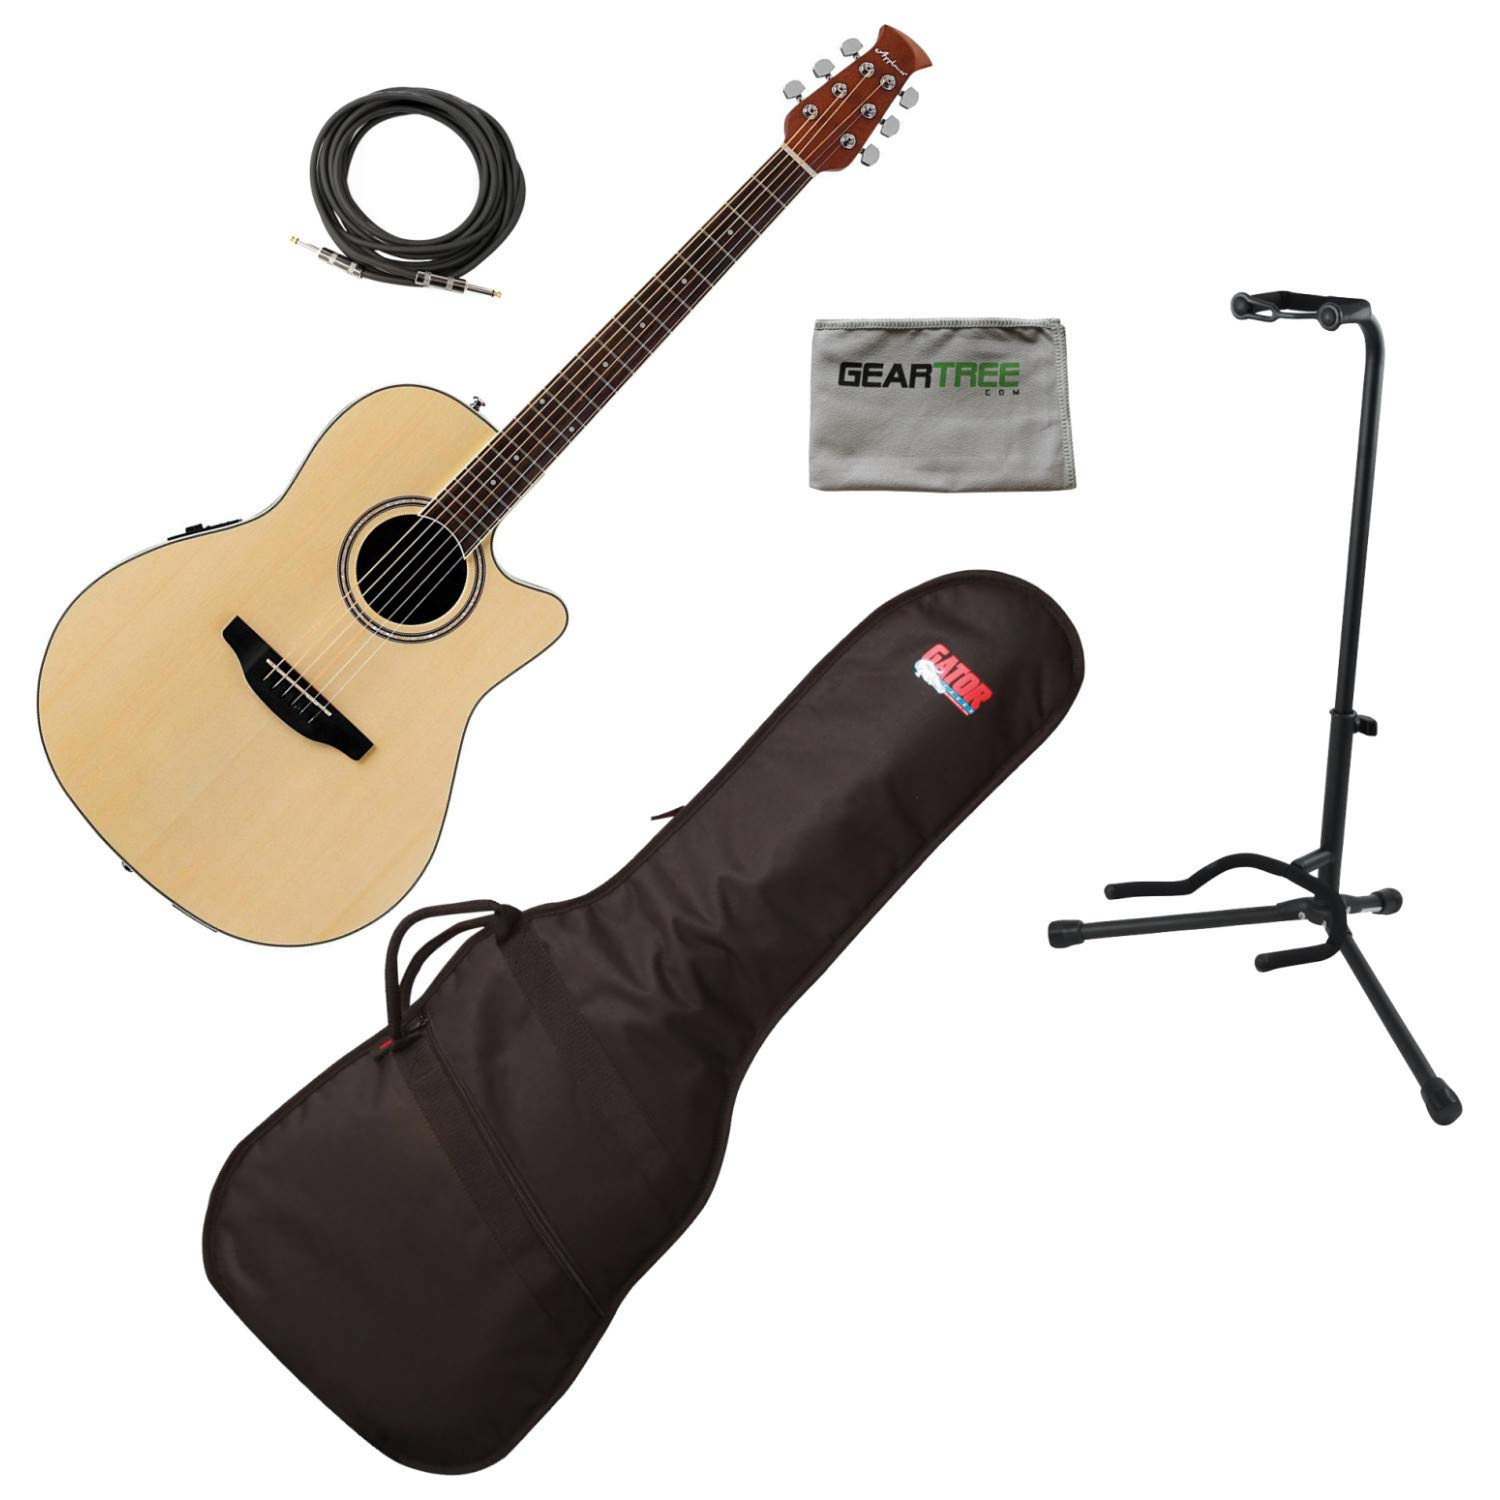 Ovation AB24II-4 APPLAUSE STD MID Acoustic Electric Guitar, NATURAL w/Gig Bag, by Ovation